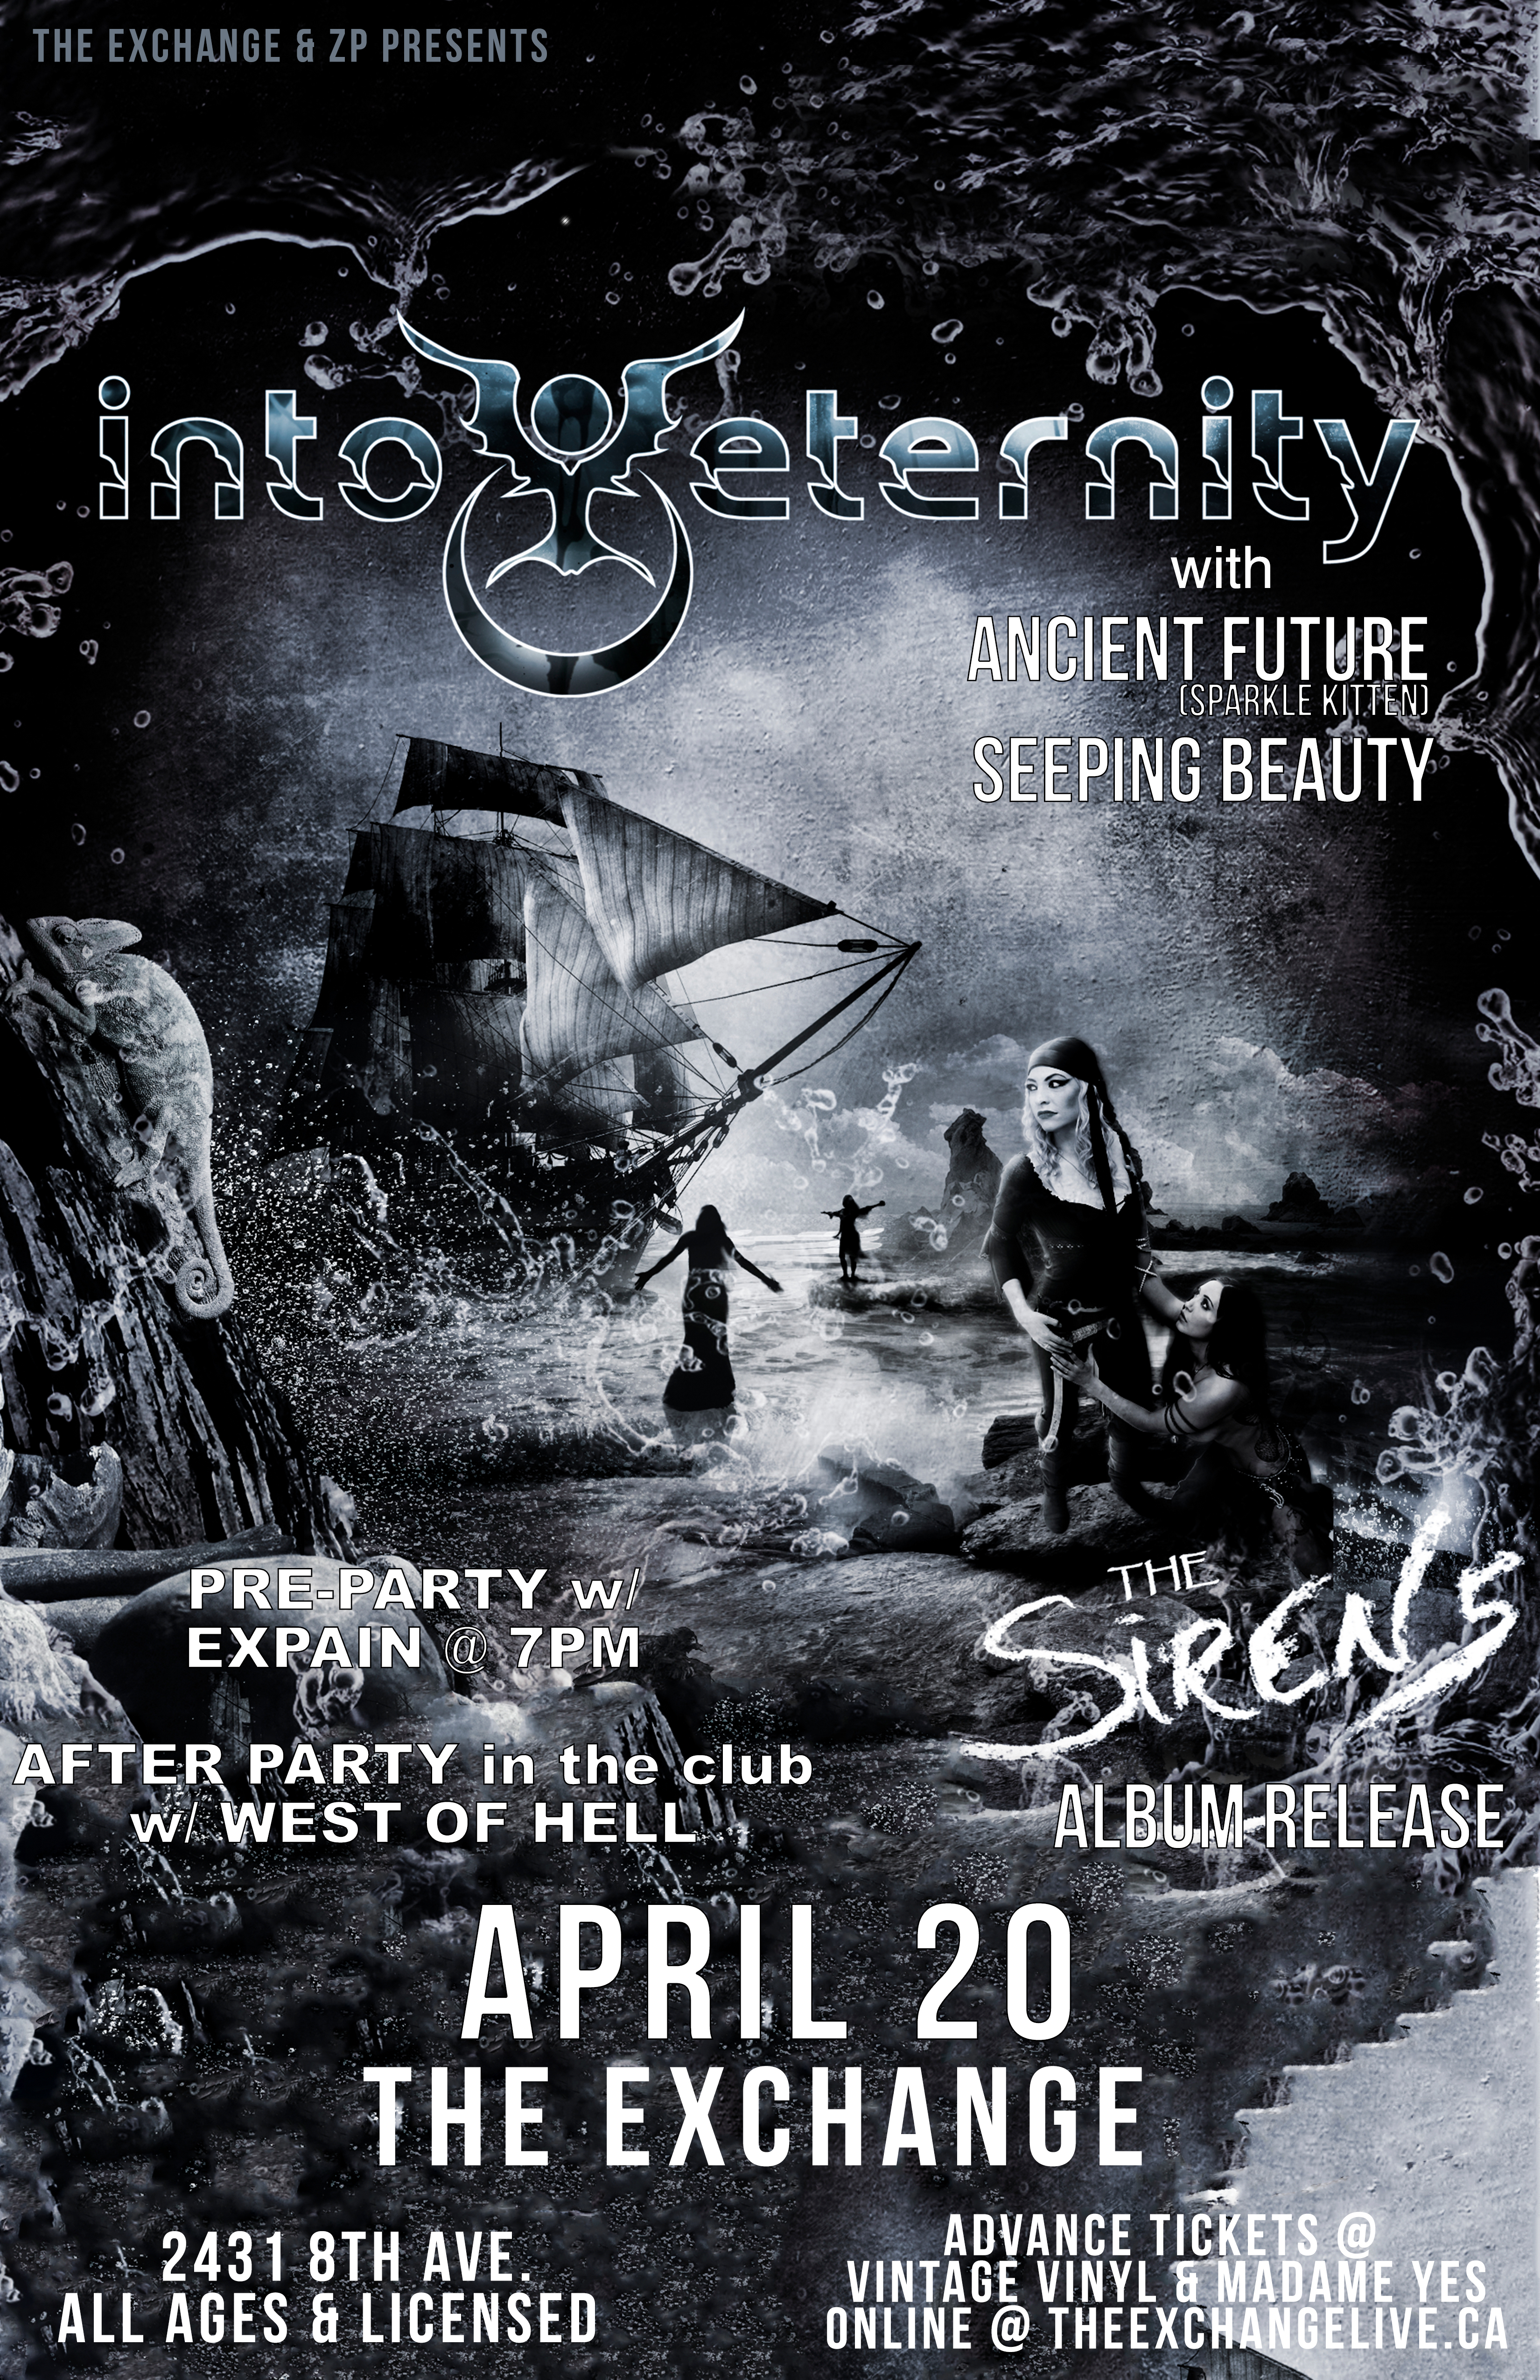 Into Eternity - The Sirens Album Release W/ Ancient Future, Seeping Beauty +Expain & West Of Hell - April 20